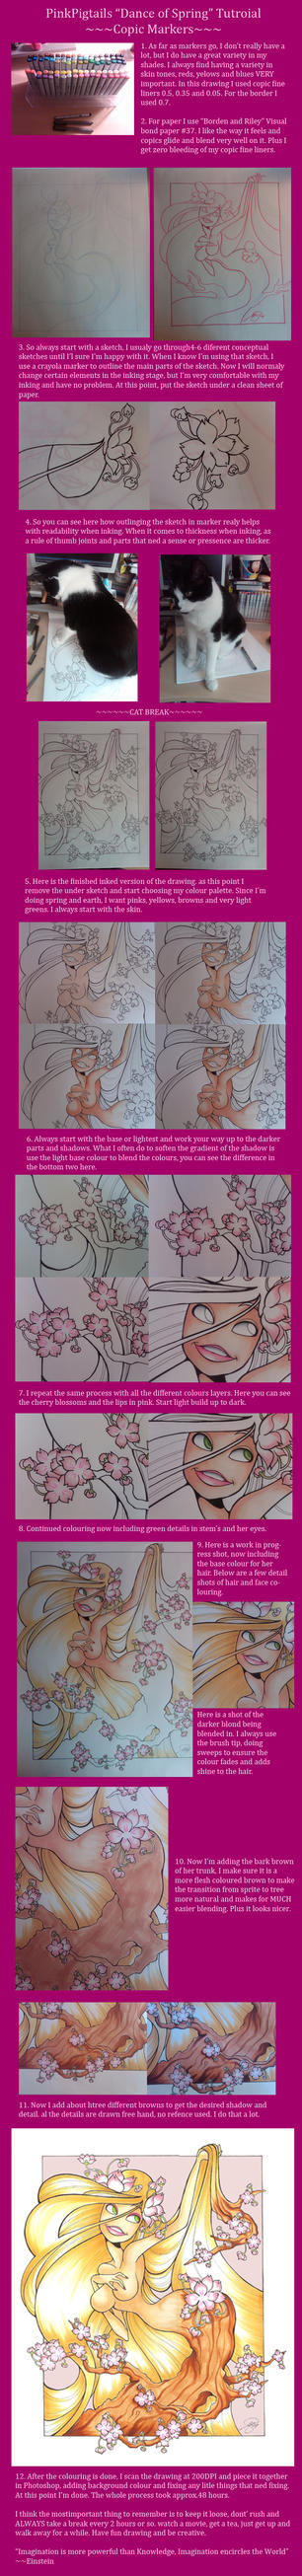 'Dance of Spring' Tutorial by PinkPigtails